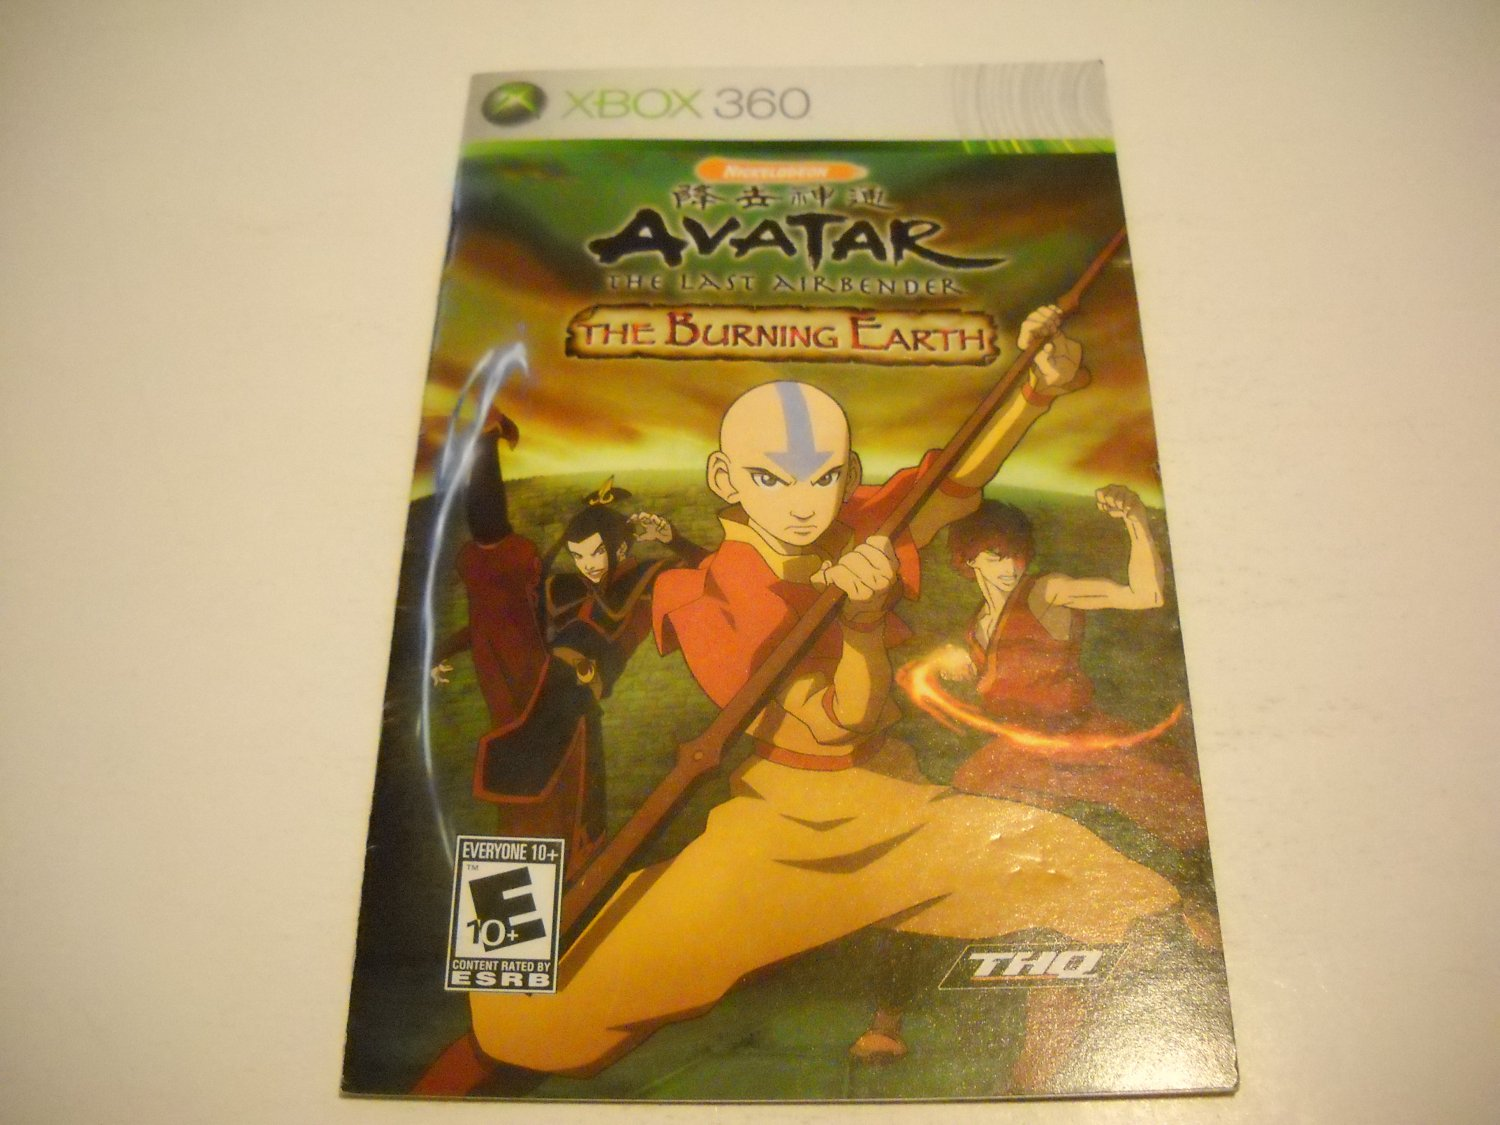 Manual ONLY ~  for Avatar The Last Airbender The Burming Earth   - Xbox 360 Instruction Booklet